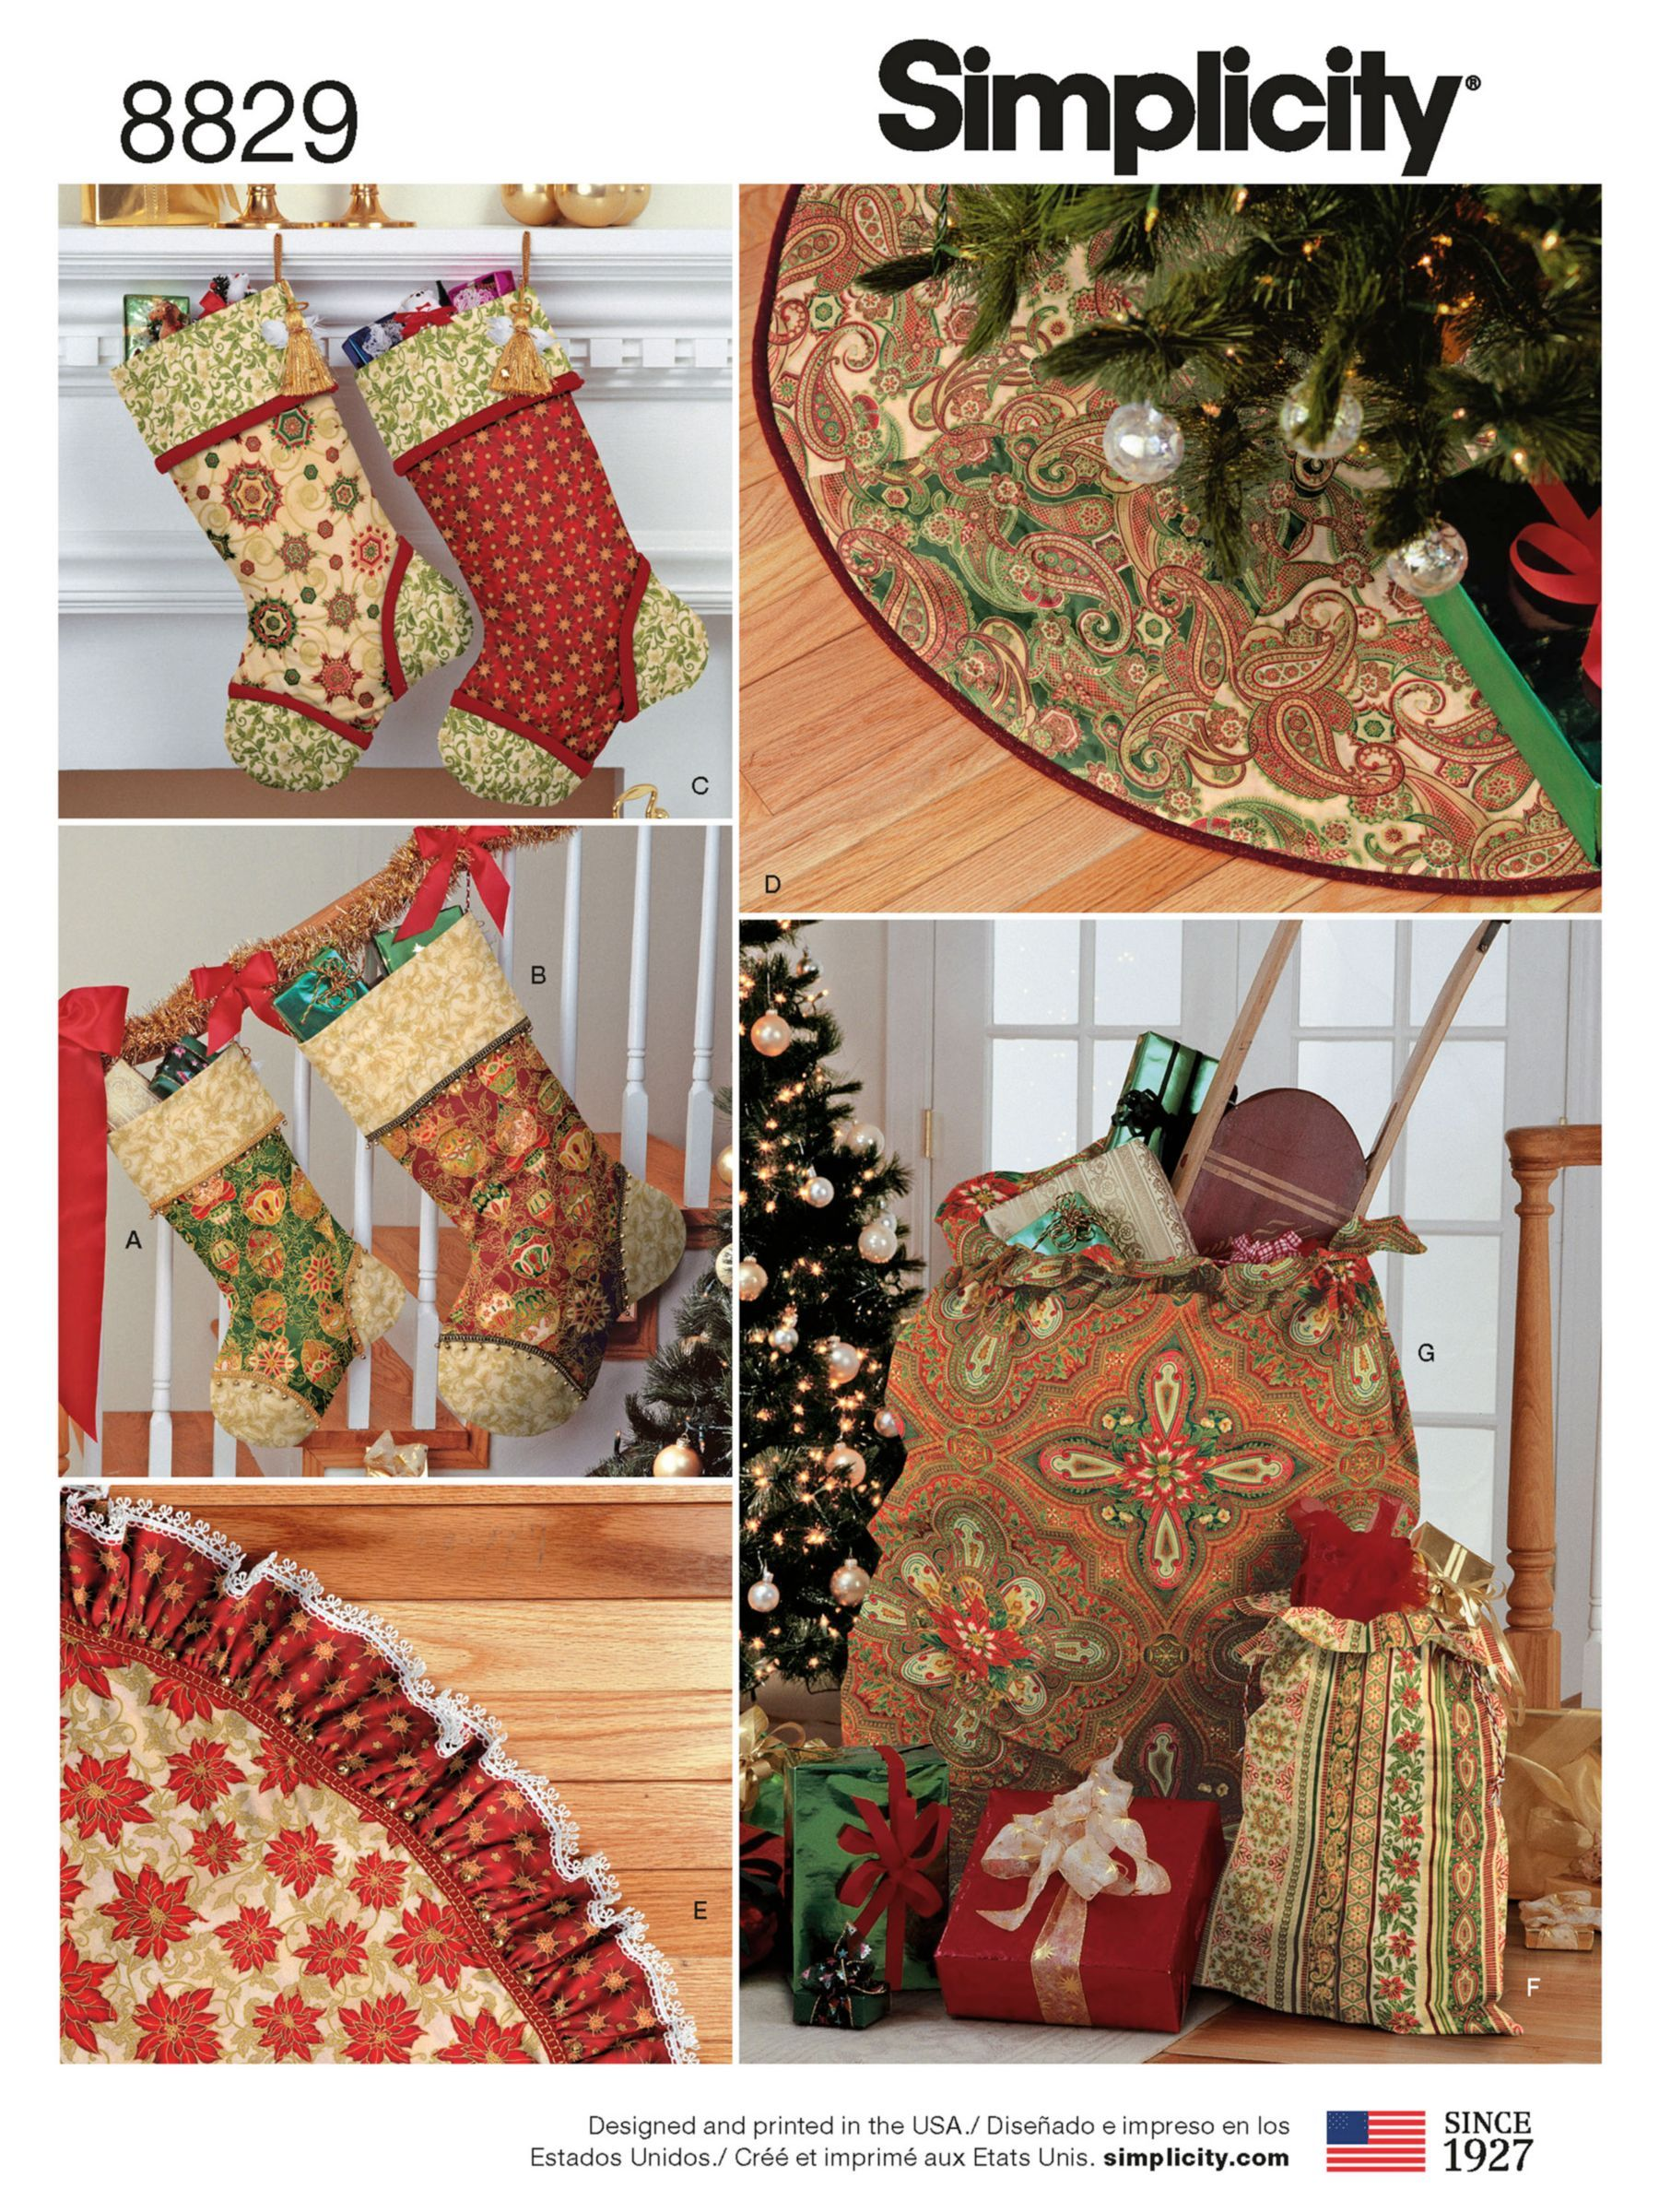 Simplicity Christmas Decor Sewing Pattern, 8829